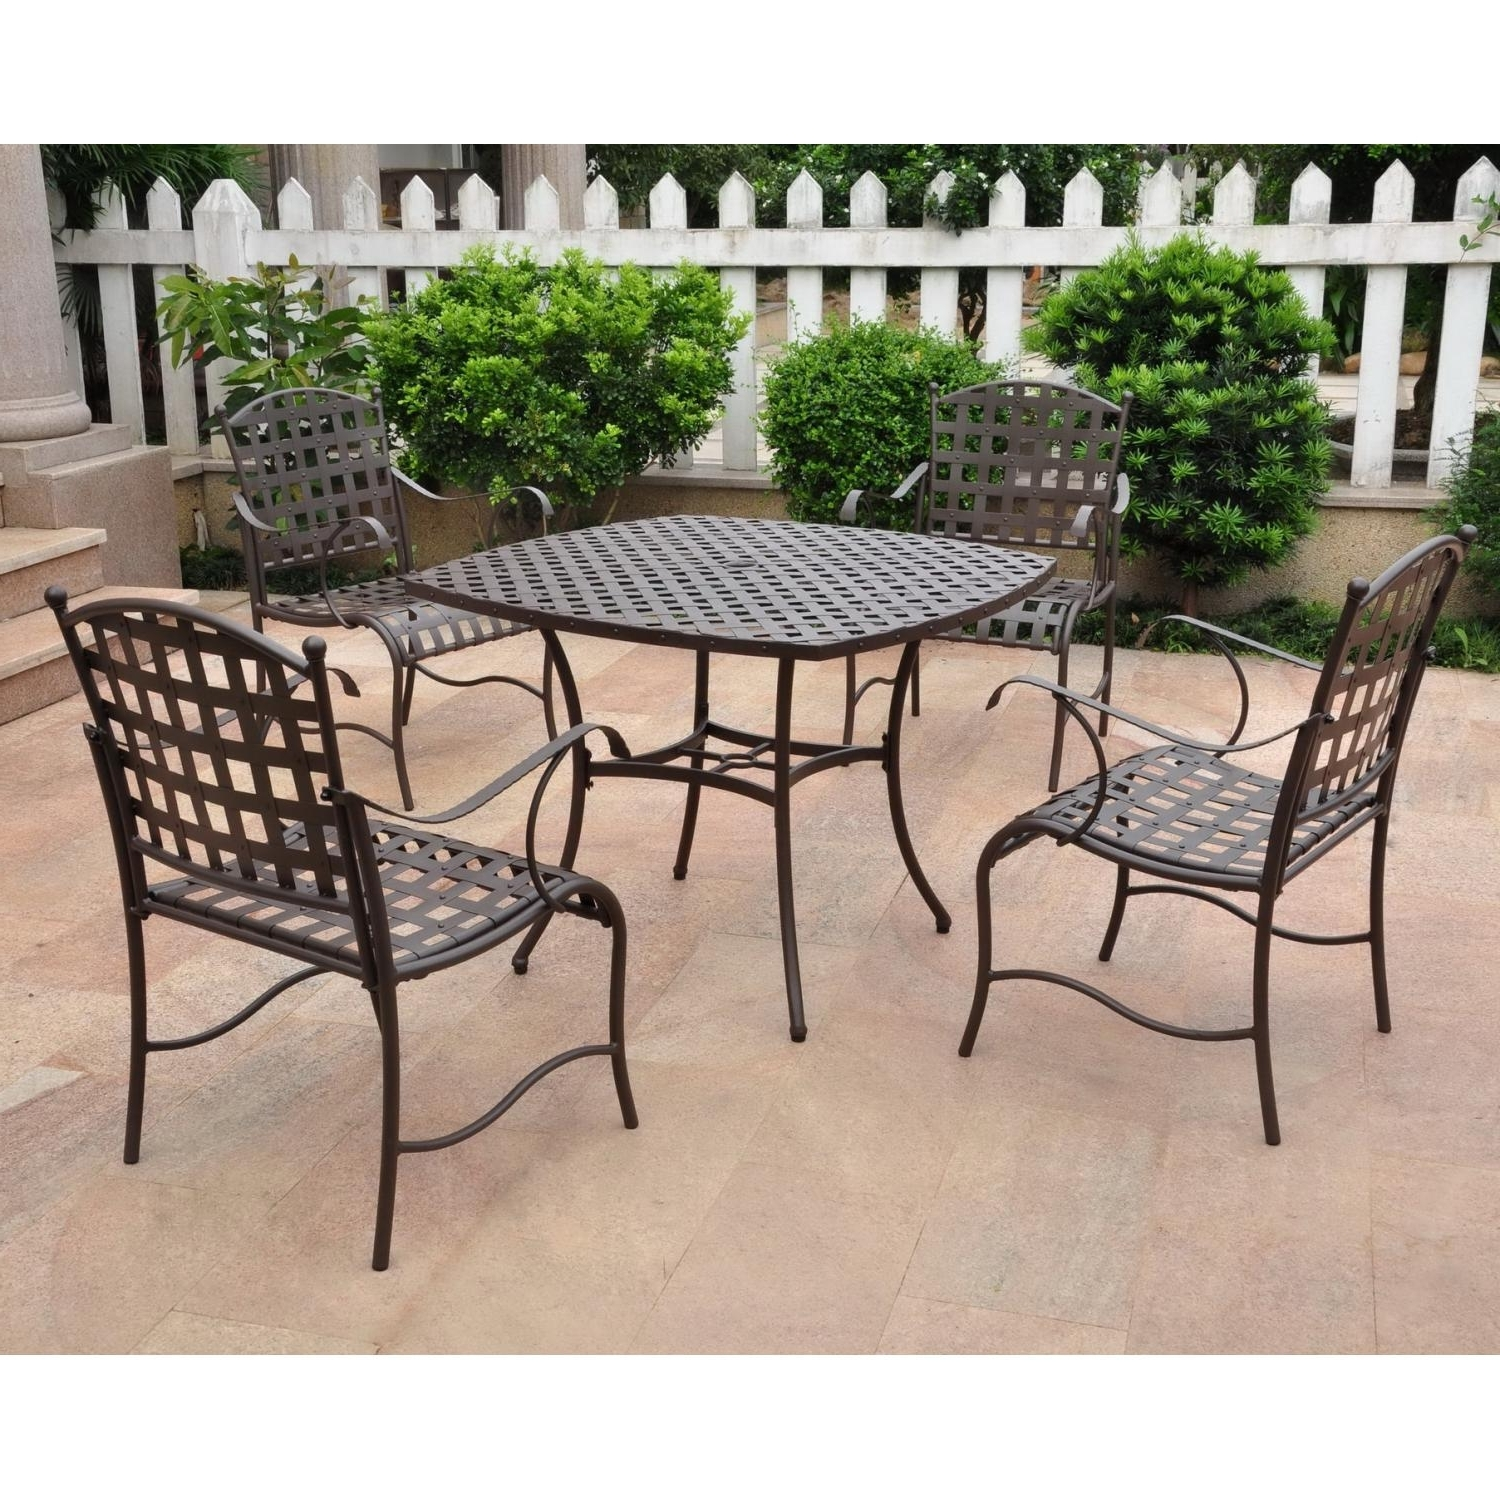 Furniture: Simple Wrought Iron Patio Furniture On Concrete Flooring With Regard To Most Recently Released Wrought Iron Patio Conversation Sets (View 10 of 15)